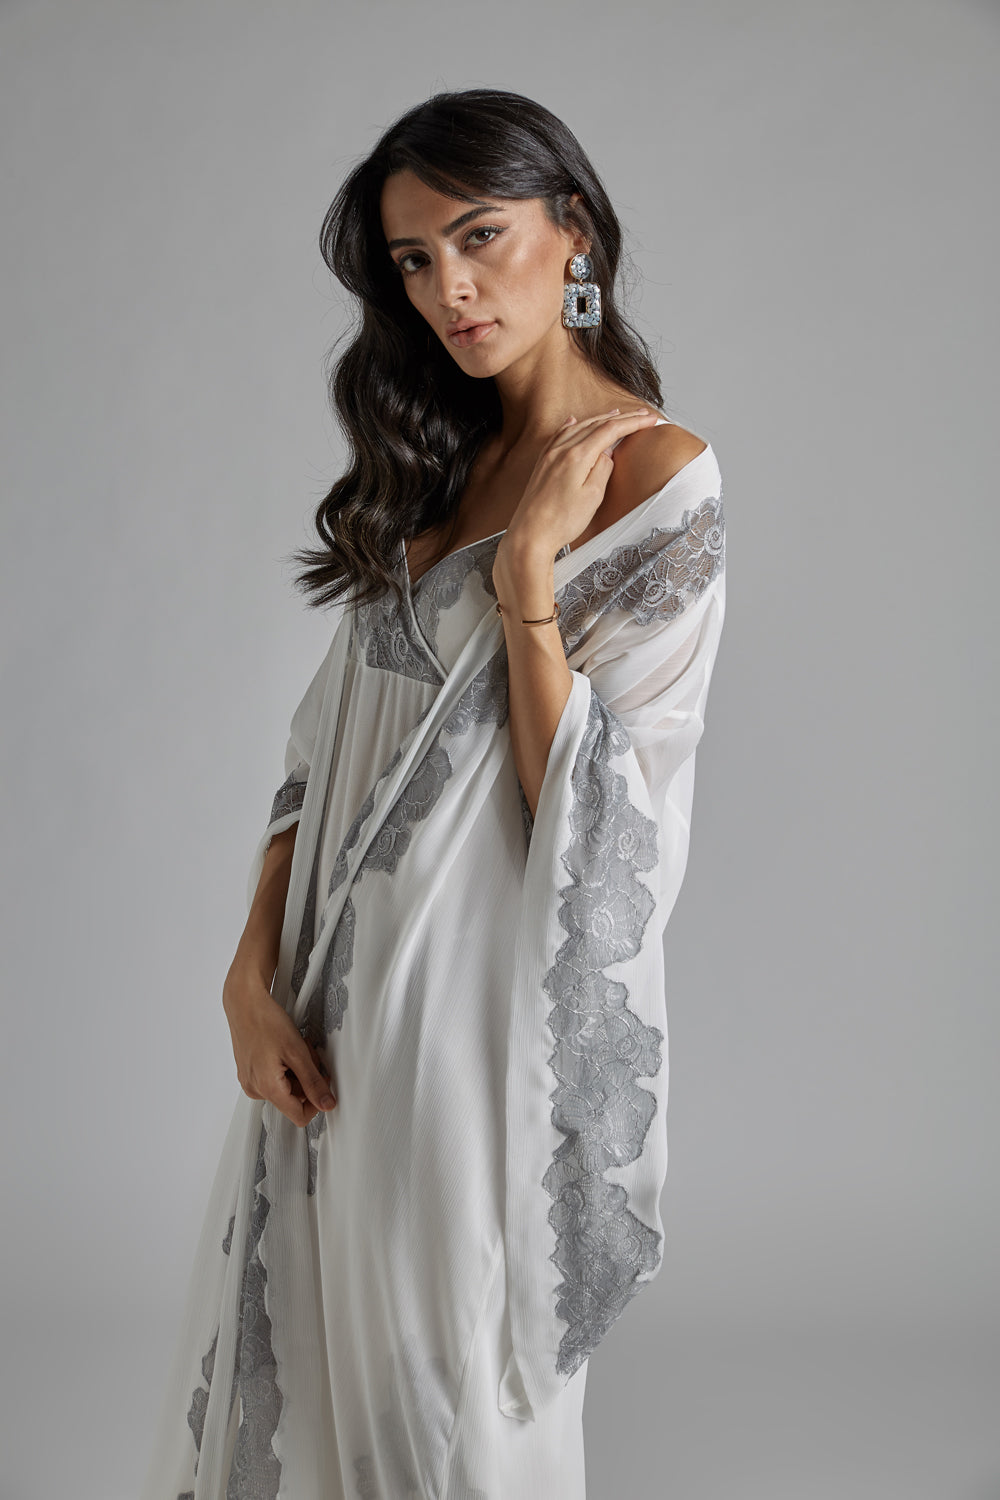 Silk Chiffon Off White Robe Set - Femme Belle